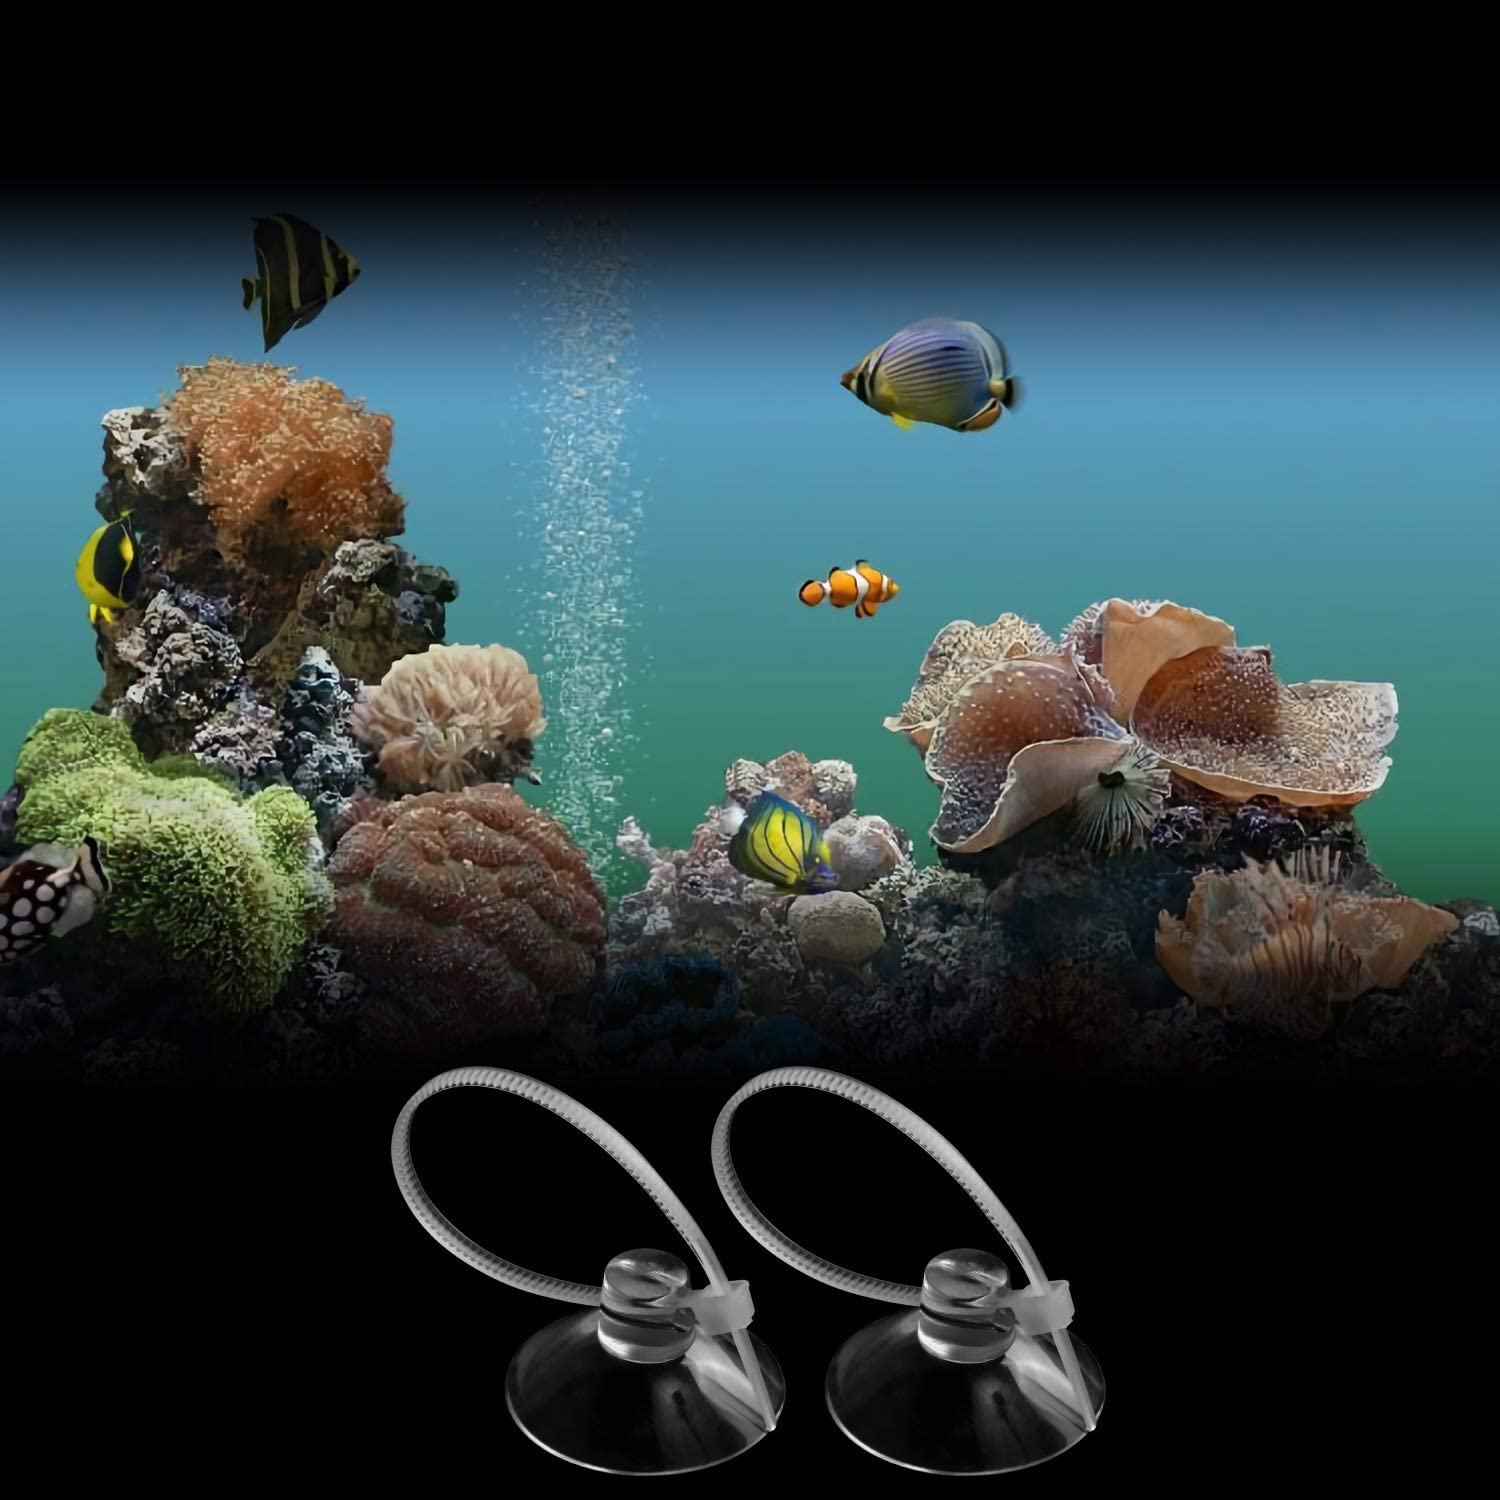 Binding Moss Shrimp Nest FEBSNOW Aquarium Suction Cups 20 Pcs Fish Tank Suction Cups Aquarium Suction Cup Clip Suction Hooks with Adjustable Cable Ties for Plants Planter